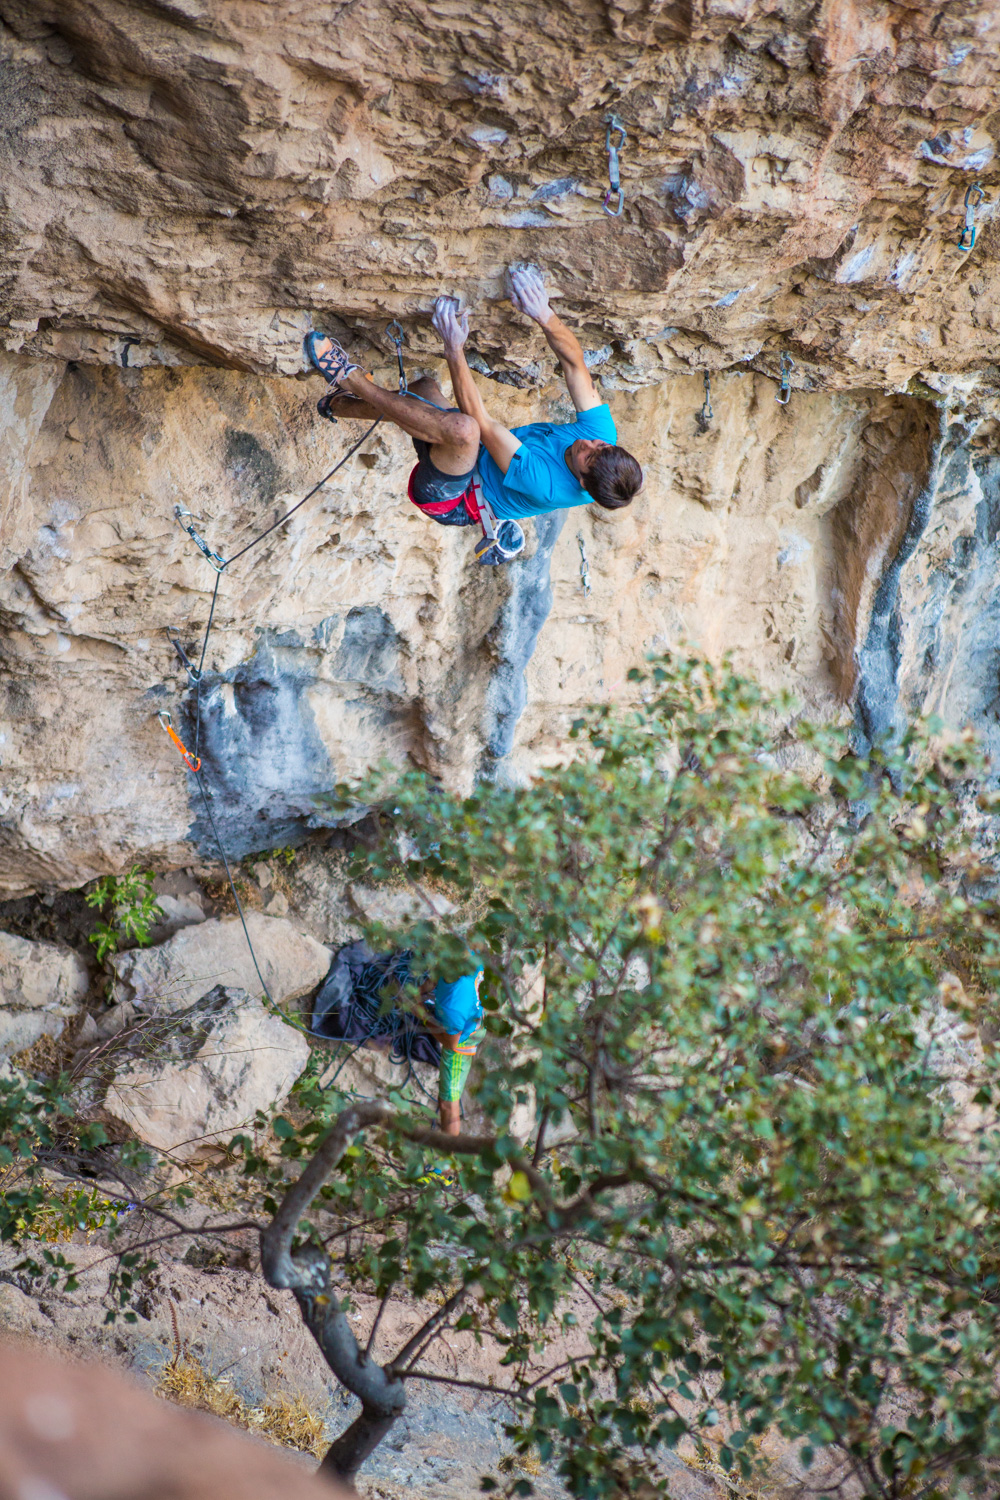 Climber David Firnenburg works the moves the day before he sends this 8c outside of Meteora, Greece.